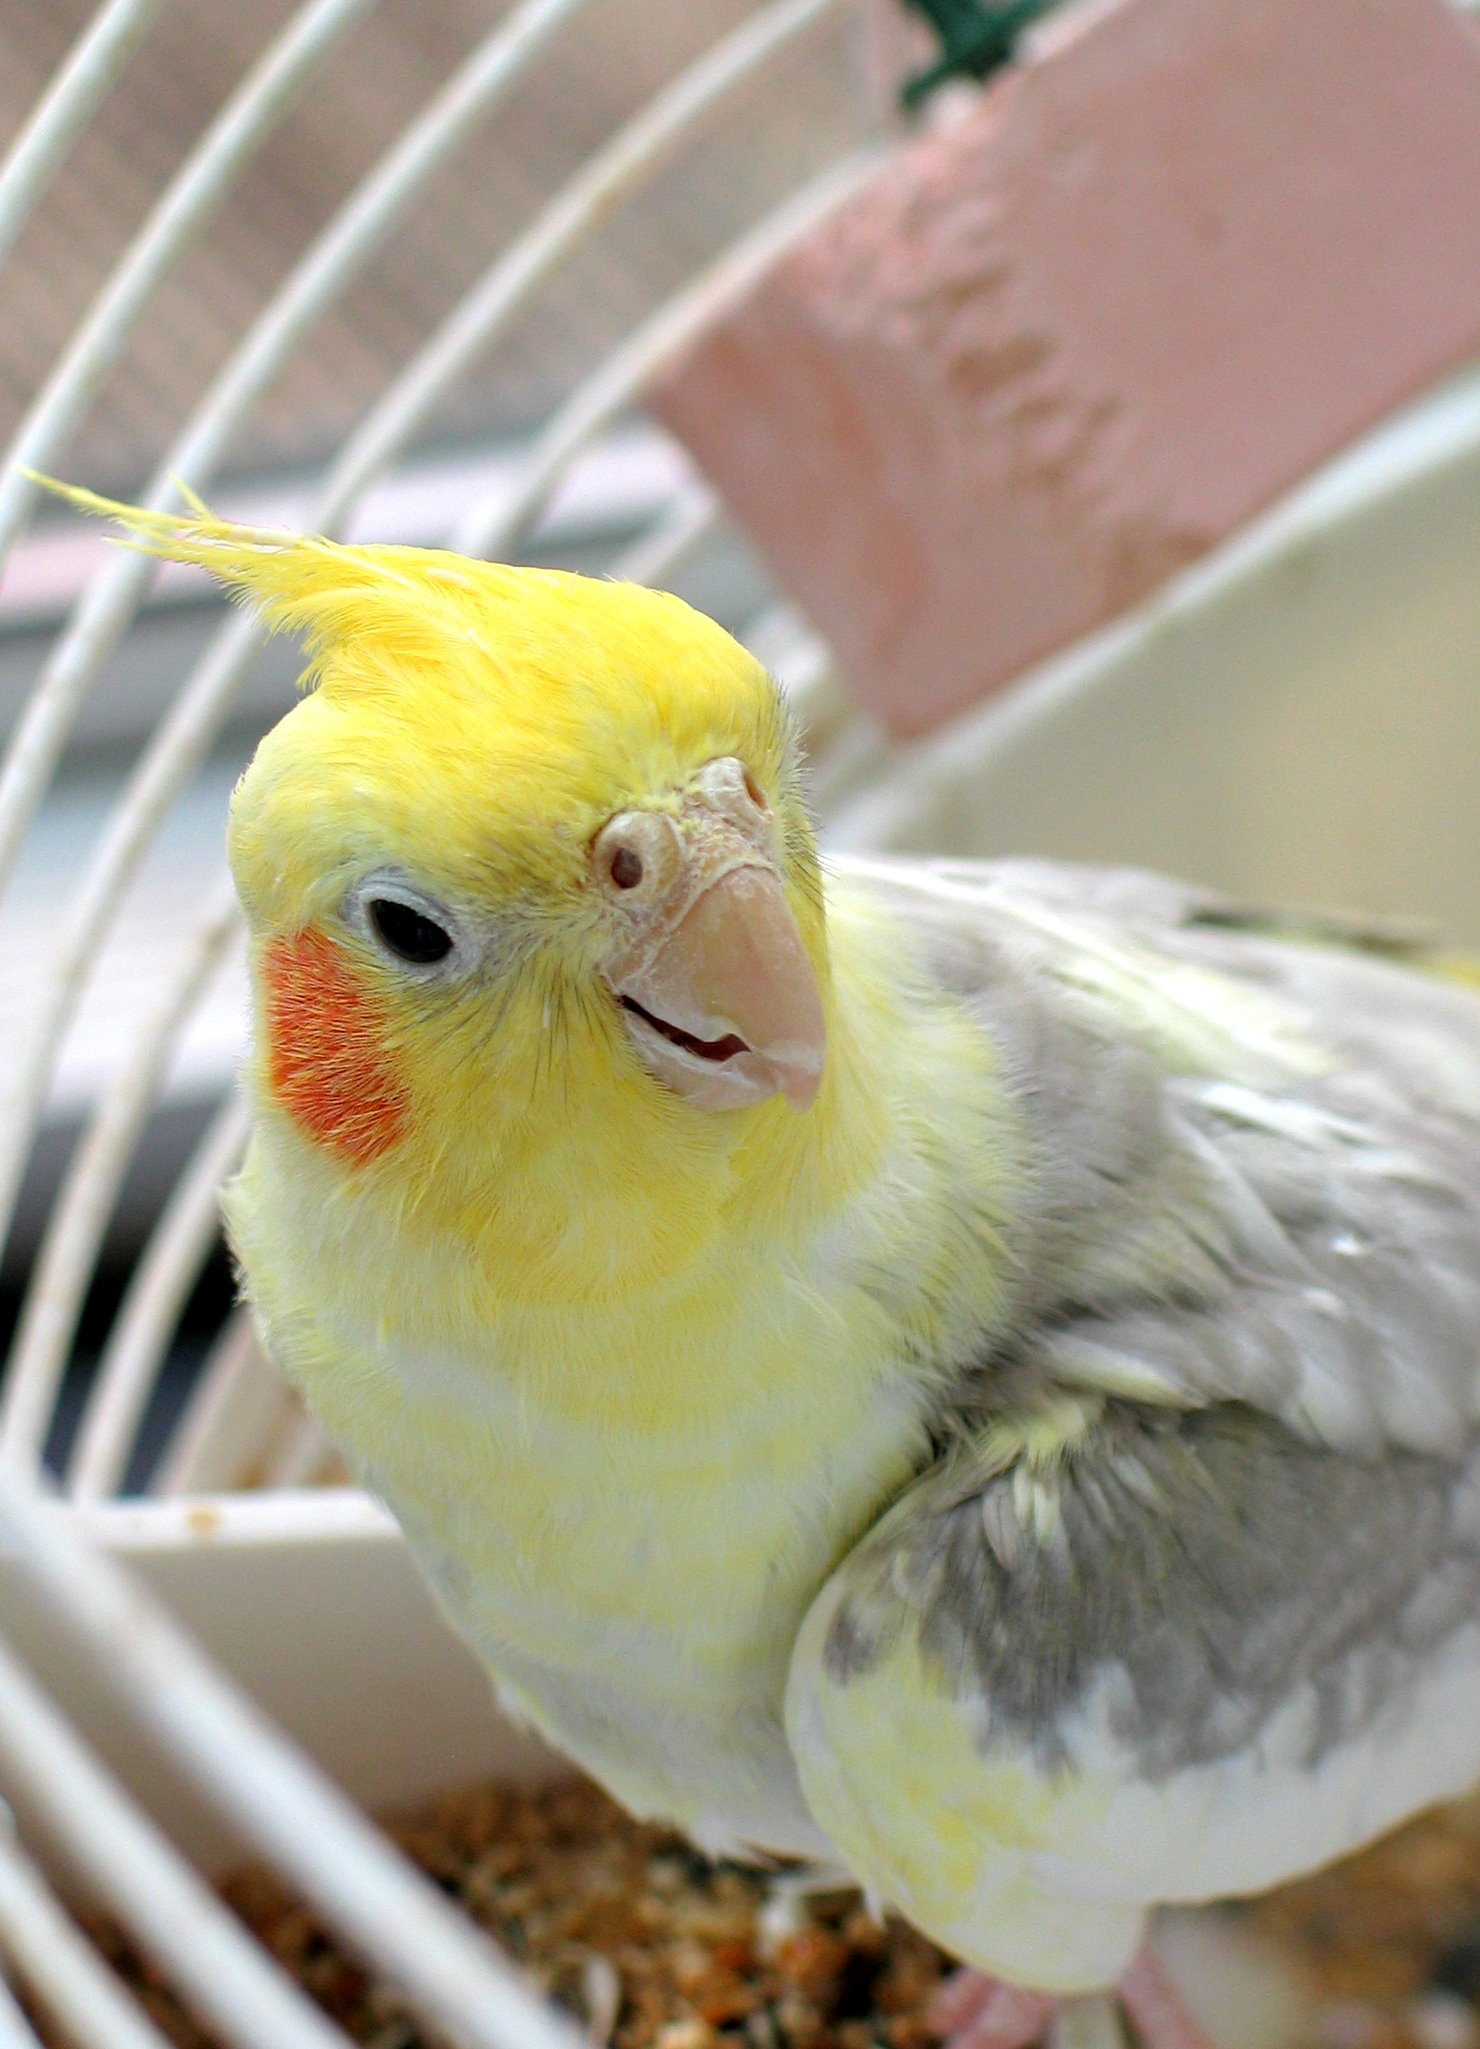 Cocky the Cockatiel